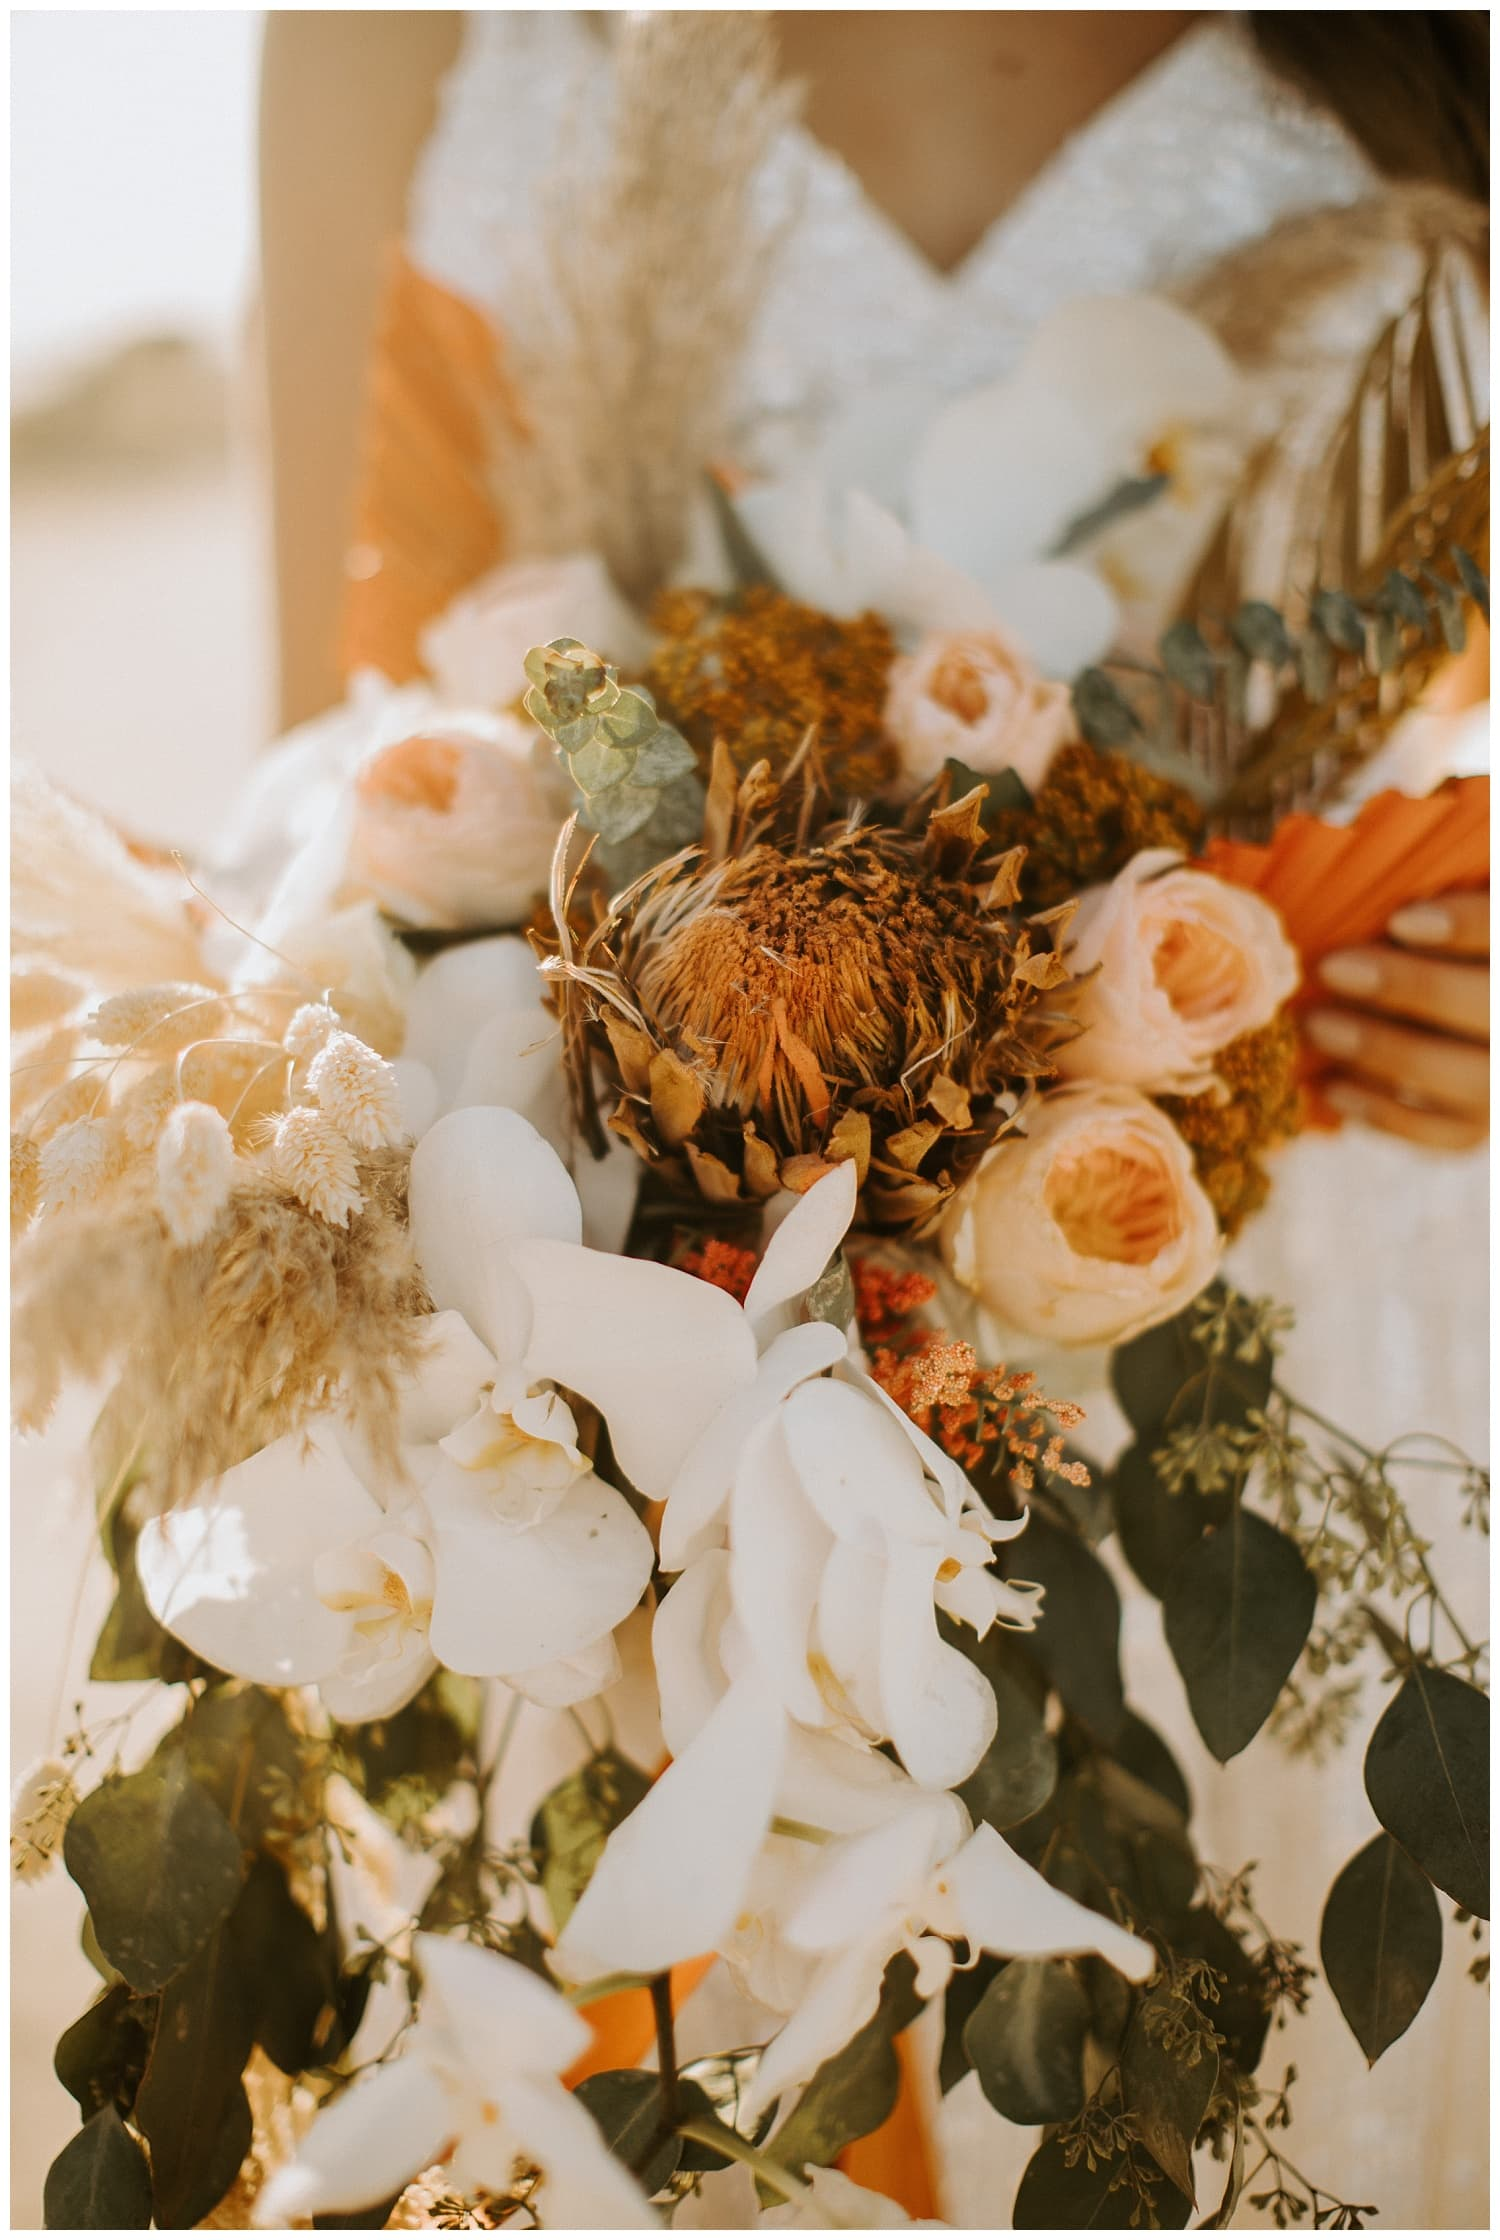 beachy bohemian bouquet,beachy bohemian florals,beachy boho bouquet,beachy boho florals,boho florals,california elopement,california wedding photographer,destination wedding,florida beach elopement,florida beach trash the dress,florida beach wedding,florida destination wedding,florida elopement photographer,florida keys elopement,florida keys wedding photographer,florida wedding photographer,fort lauderdale elopement,fort lauderdale wedding photographer,house of refuge,house of refuge elopement,house of refuge trash the dress,house of refuge wedding,jensen beach elopement,jensen beach wedding,jensen beach wedding photographer,key west elopement,laguna beach elopement,laguna beach wedding photographer,little mermaid dress,miami elopement,miami wedding photographer,orange boho florals,palm beach wedding photographer,pampas grass,pampas grass bouquet,rocky beach elopement,rocky beach wedding,sequin wedding dress,socal wedding photographer,south florida wedding photographer,sparkly wedding dress,stuart wedding photographer,